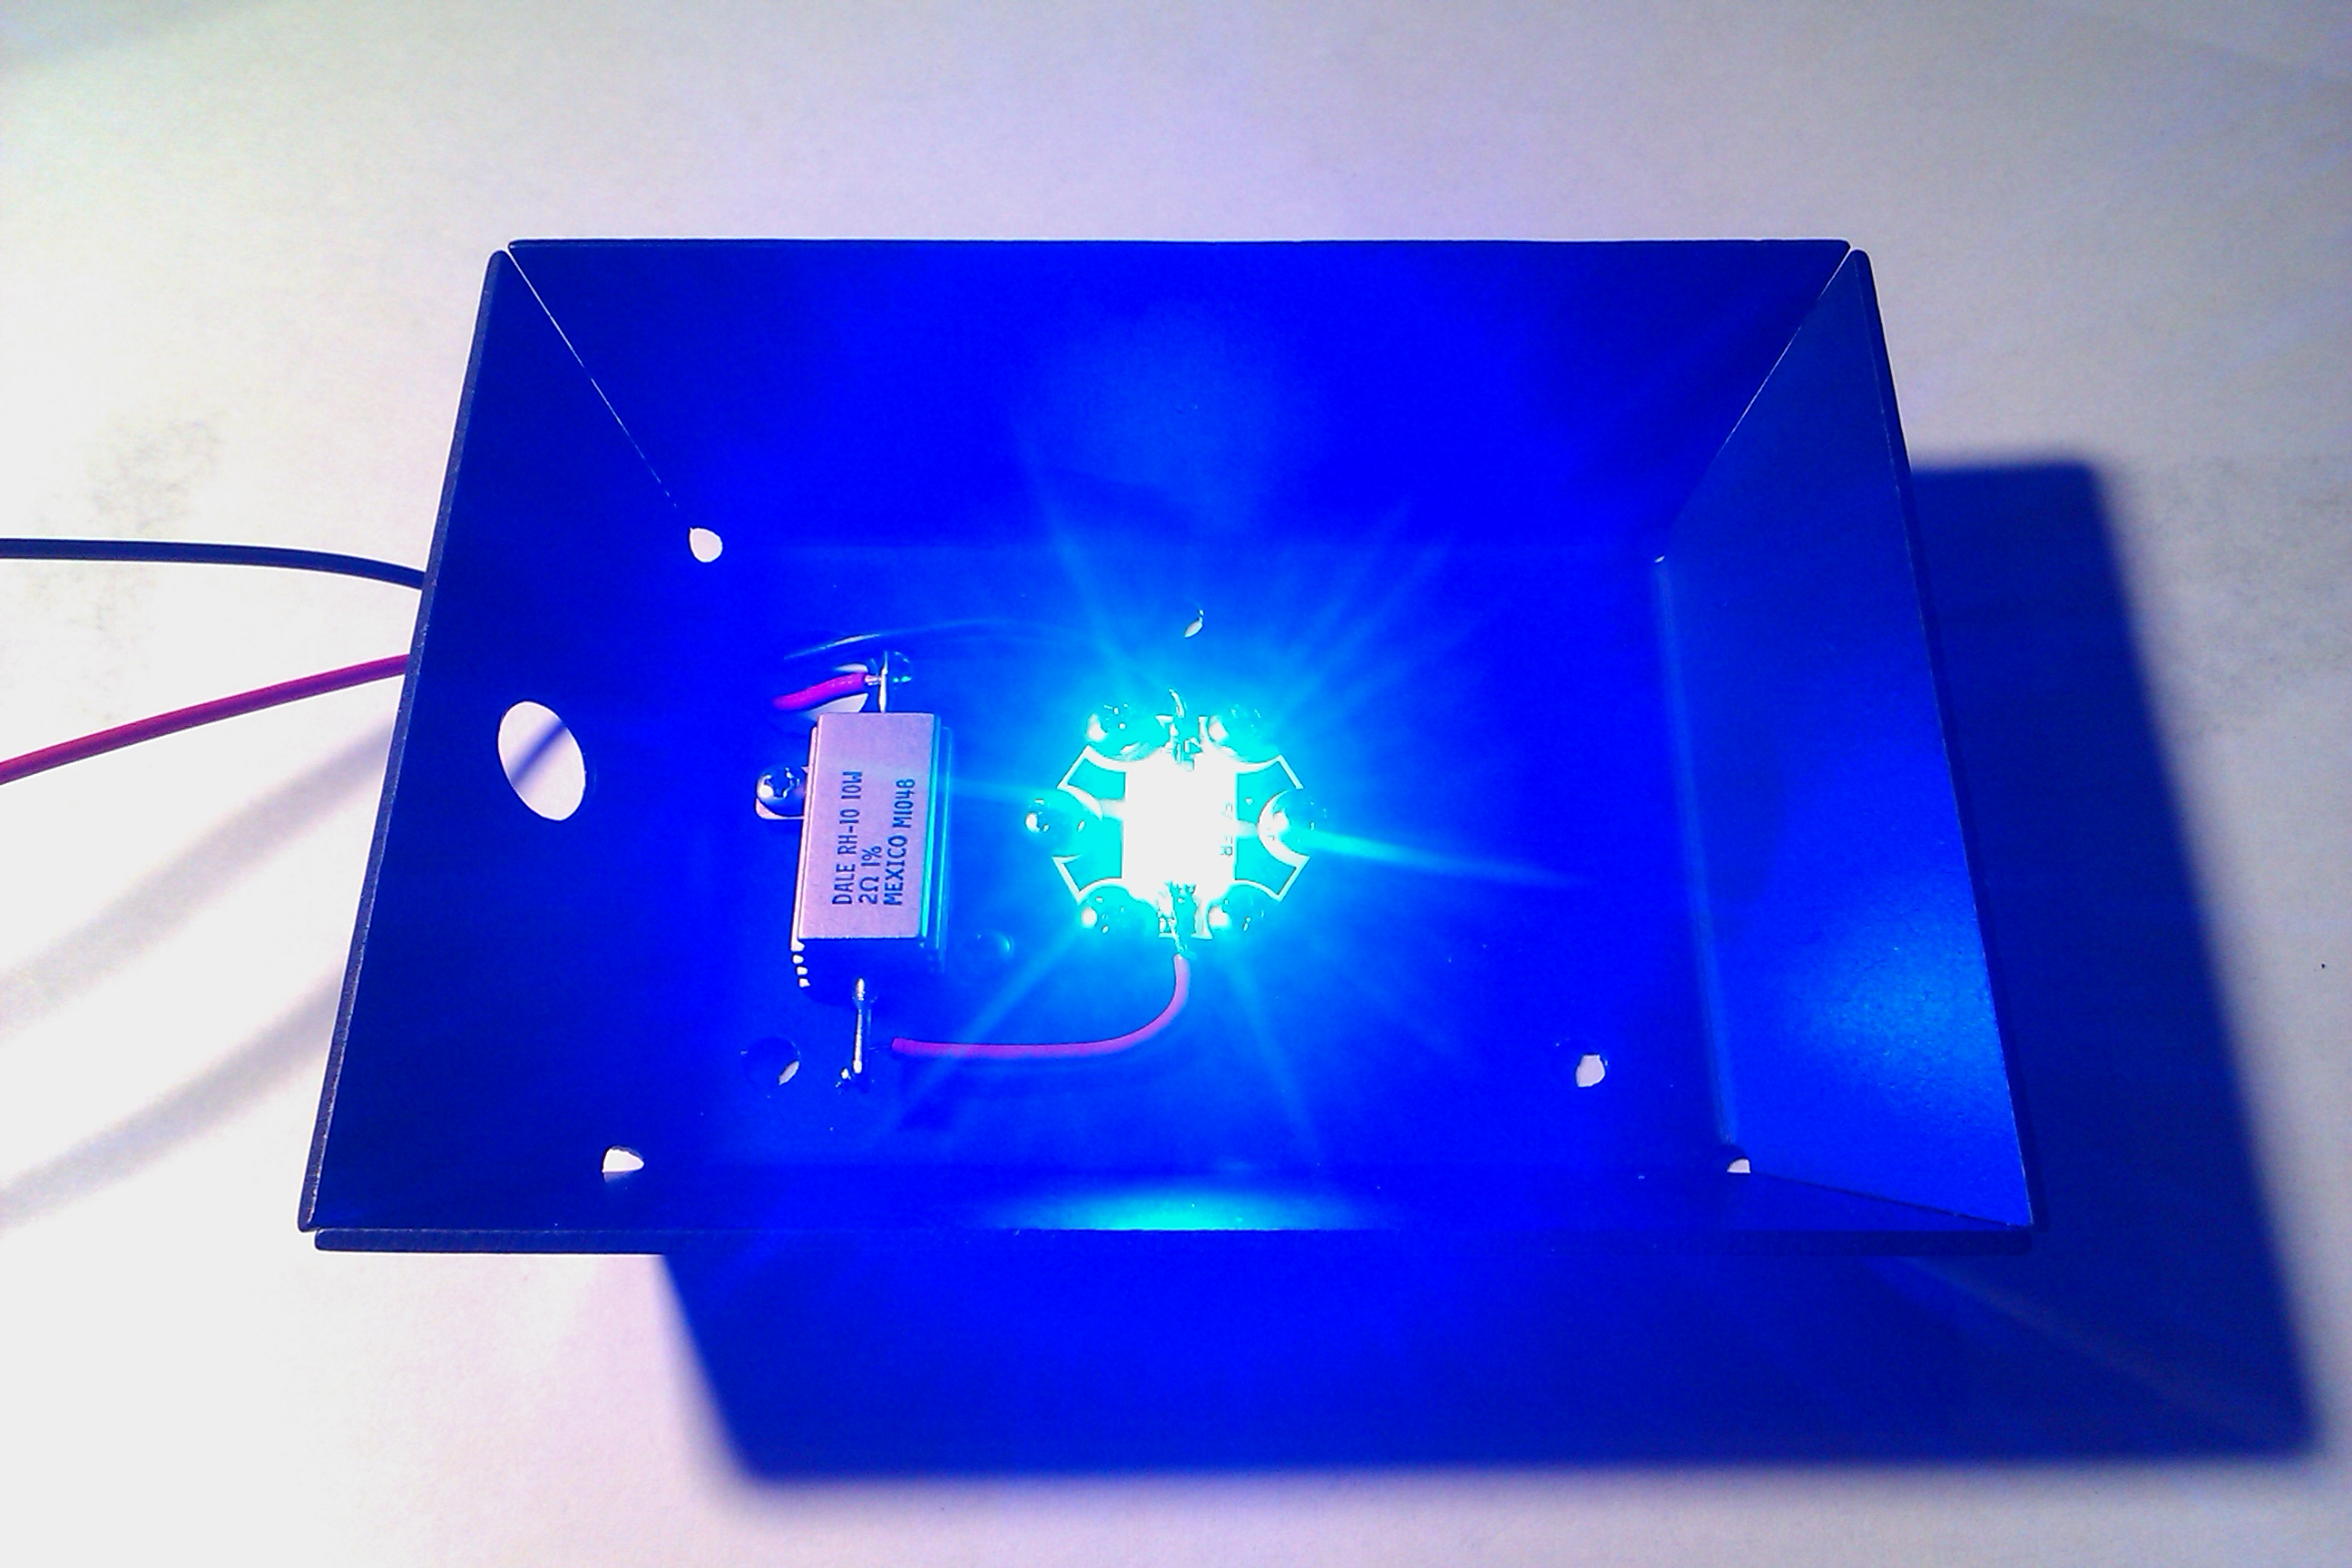 Picture of Extremely Simple 5V Ultrabright LED Light